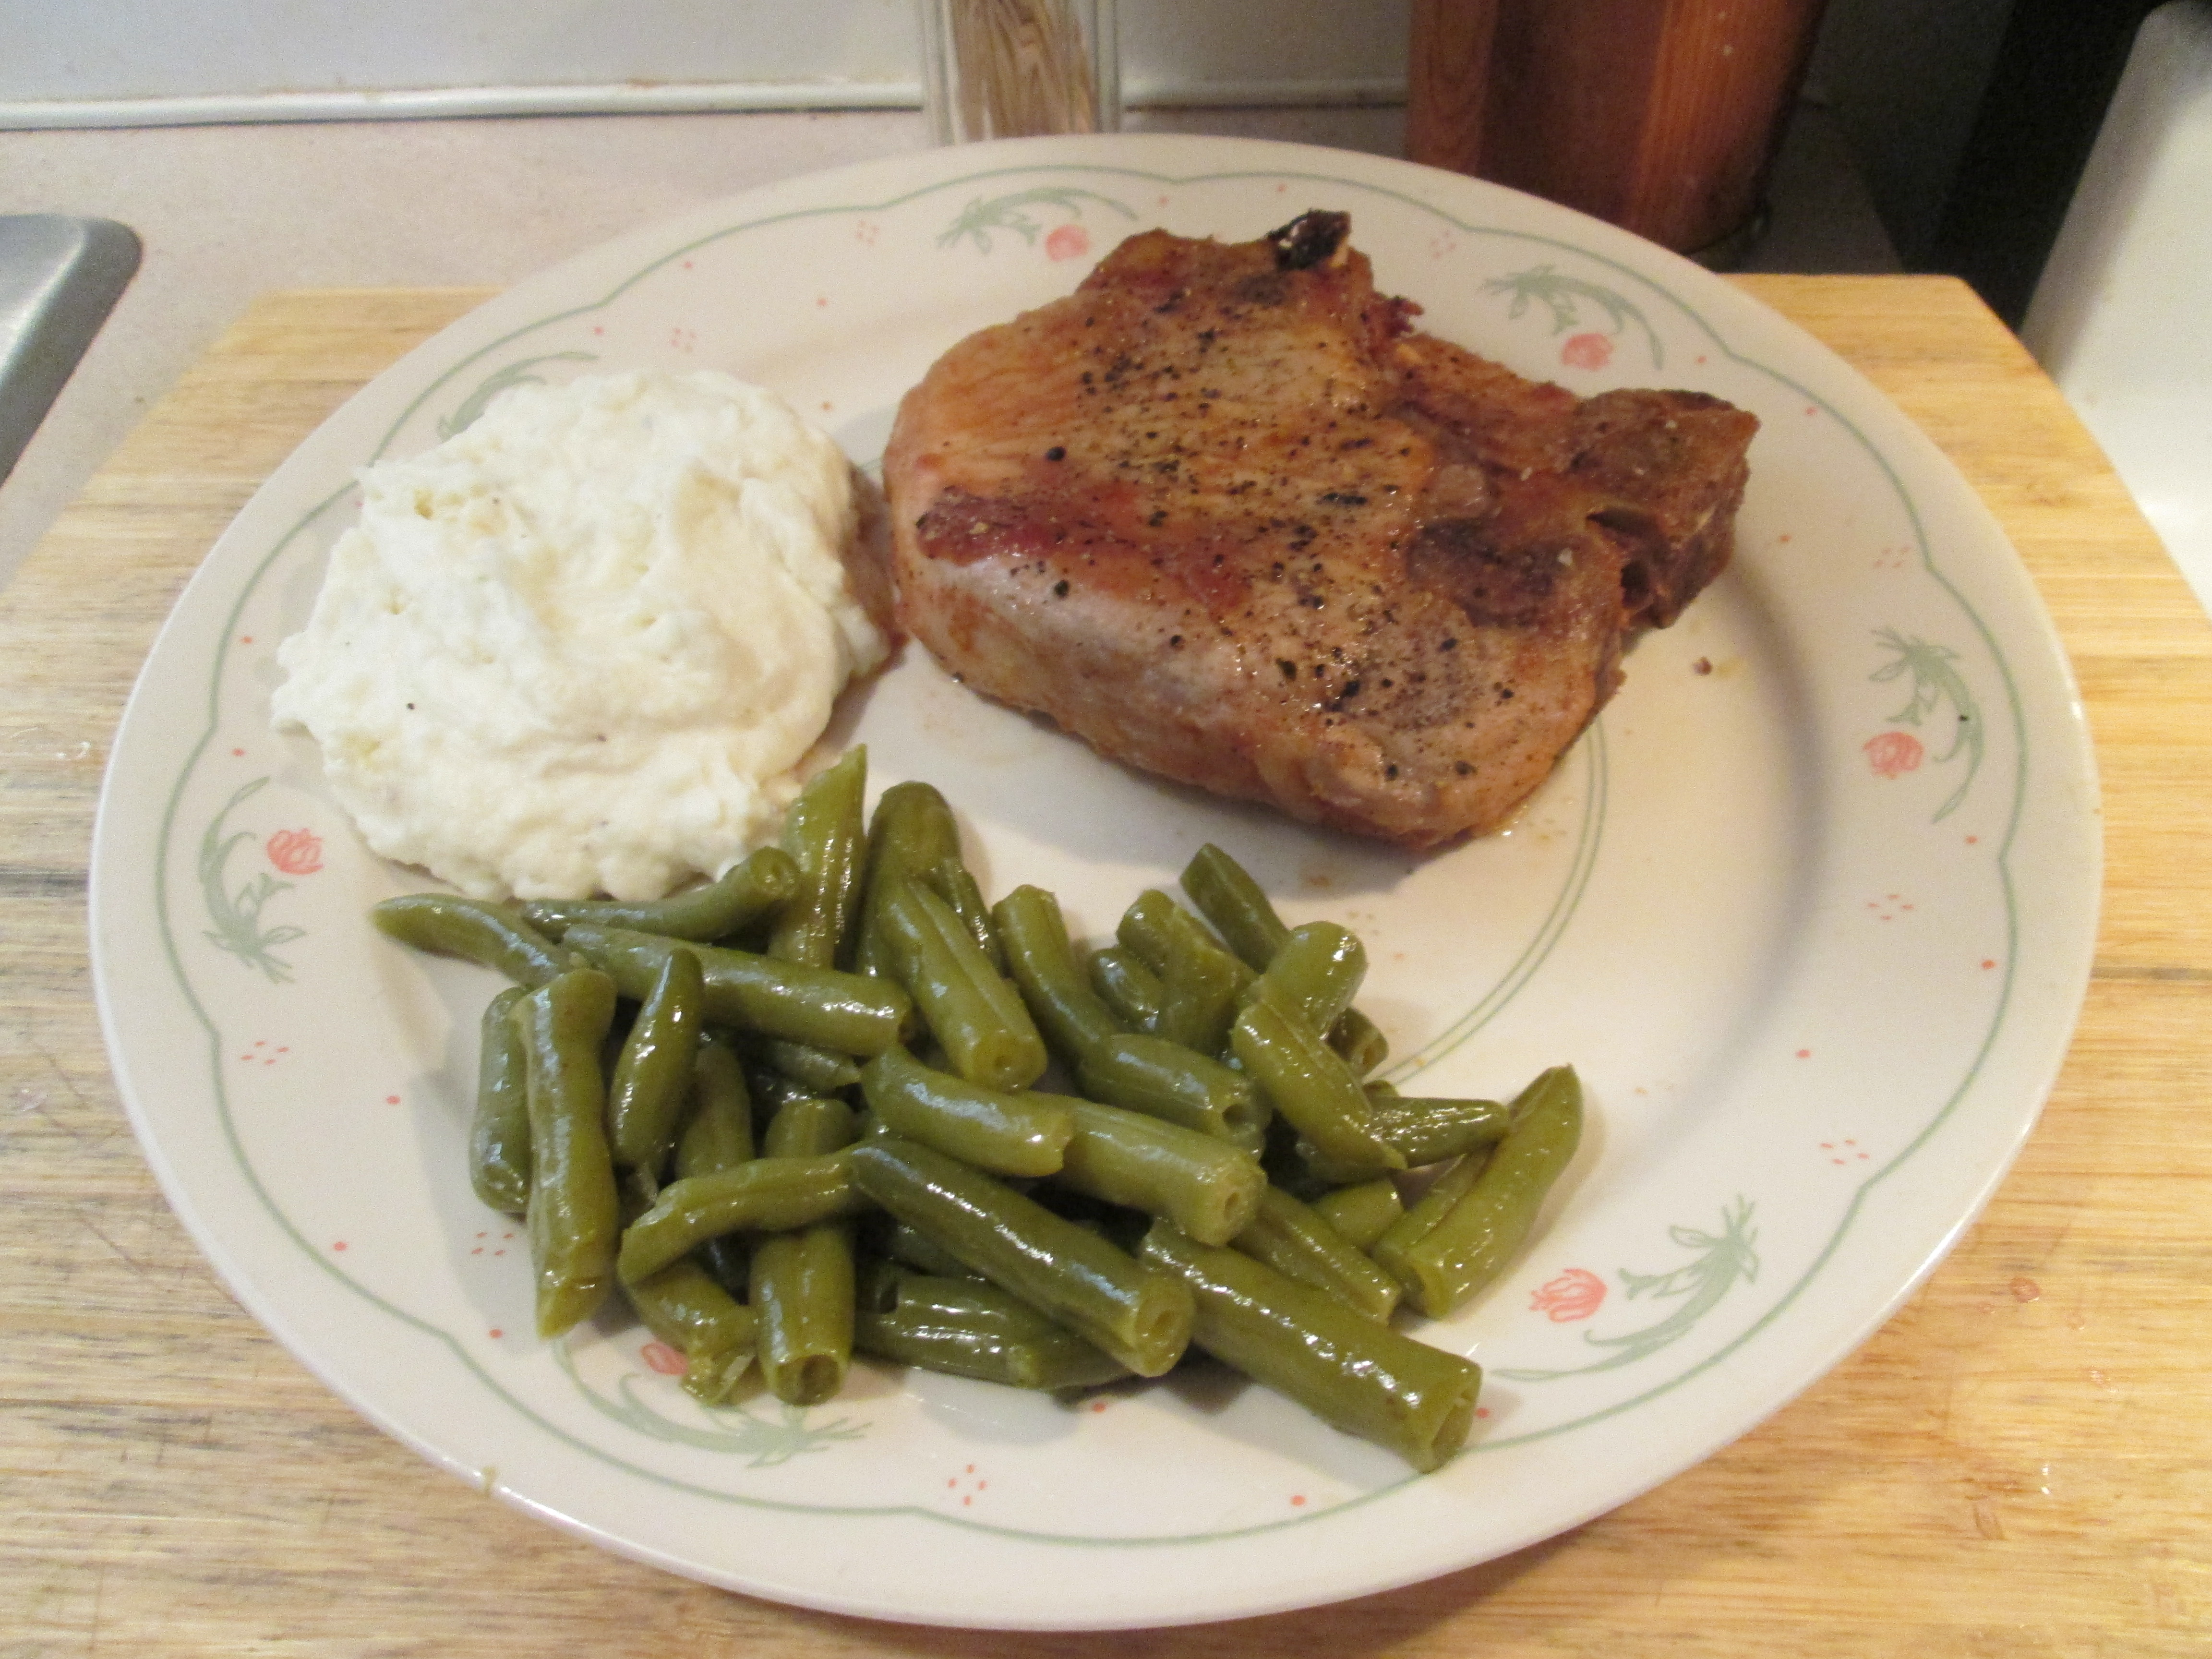 Baked Pork Chops w/ Mashed Potatoes and Cut Green Beans | My